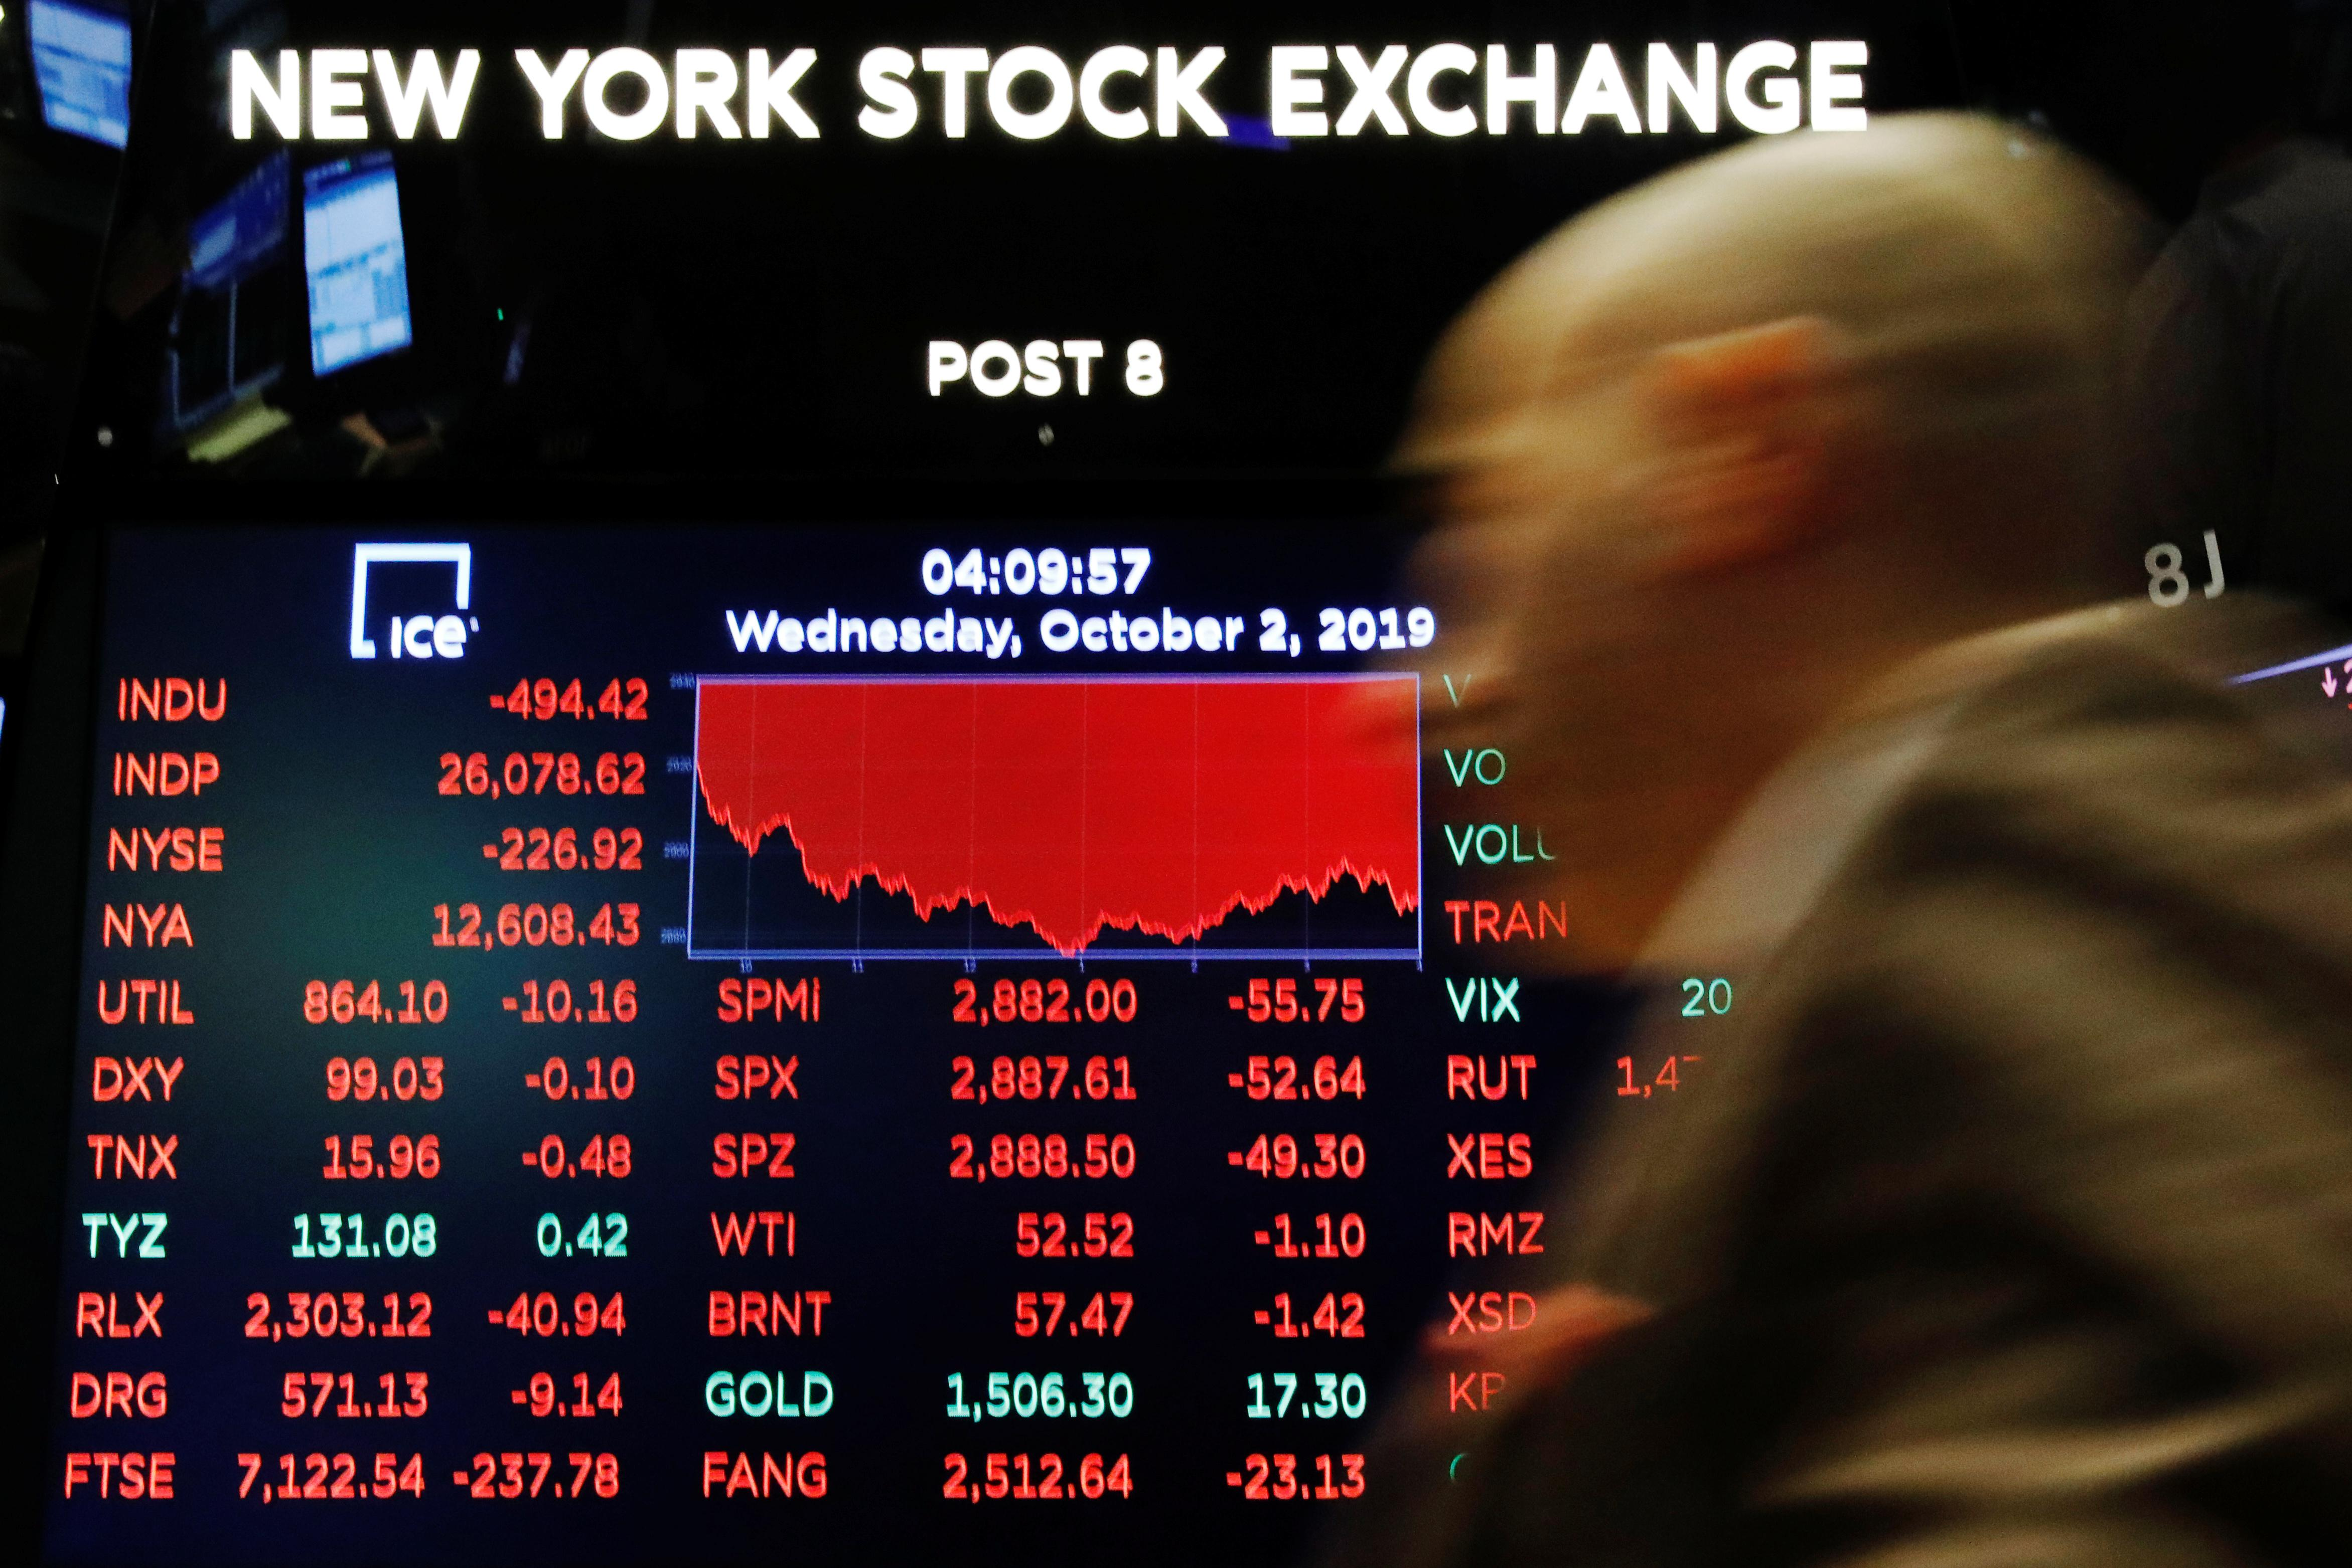 Wall Street falls amid caution on U.S.-China trade dispute